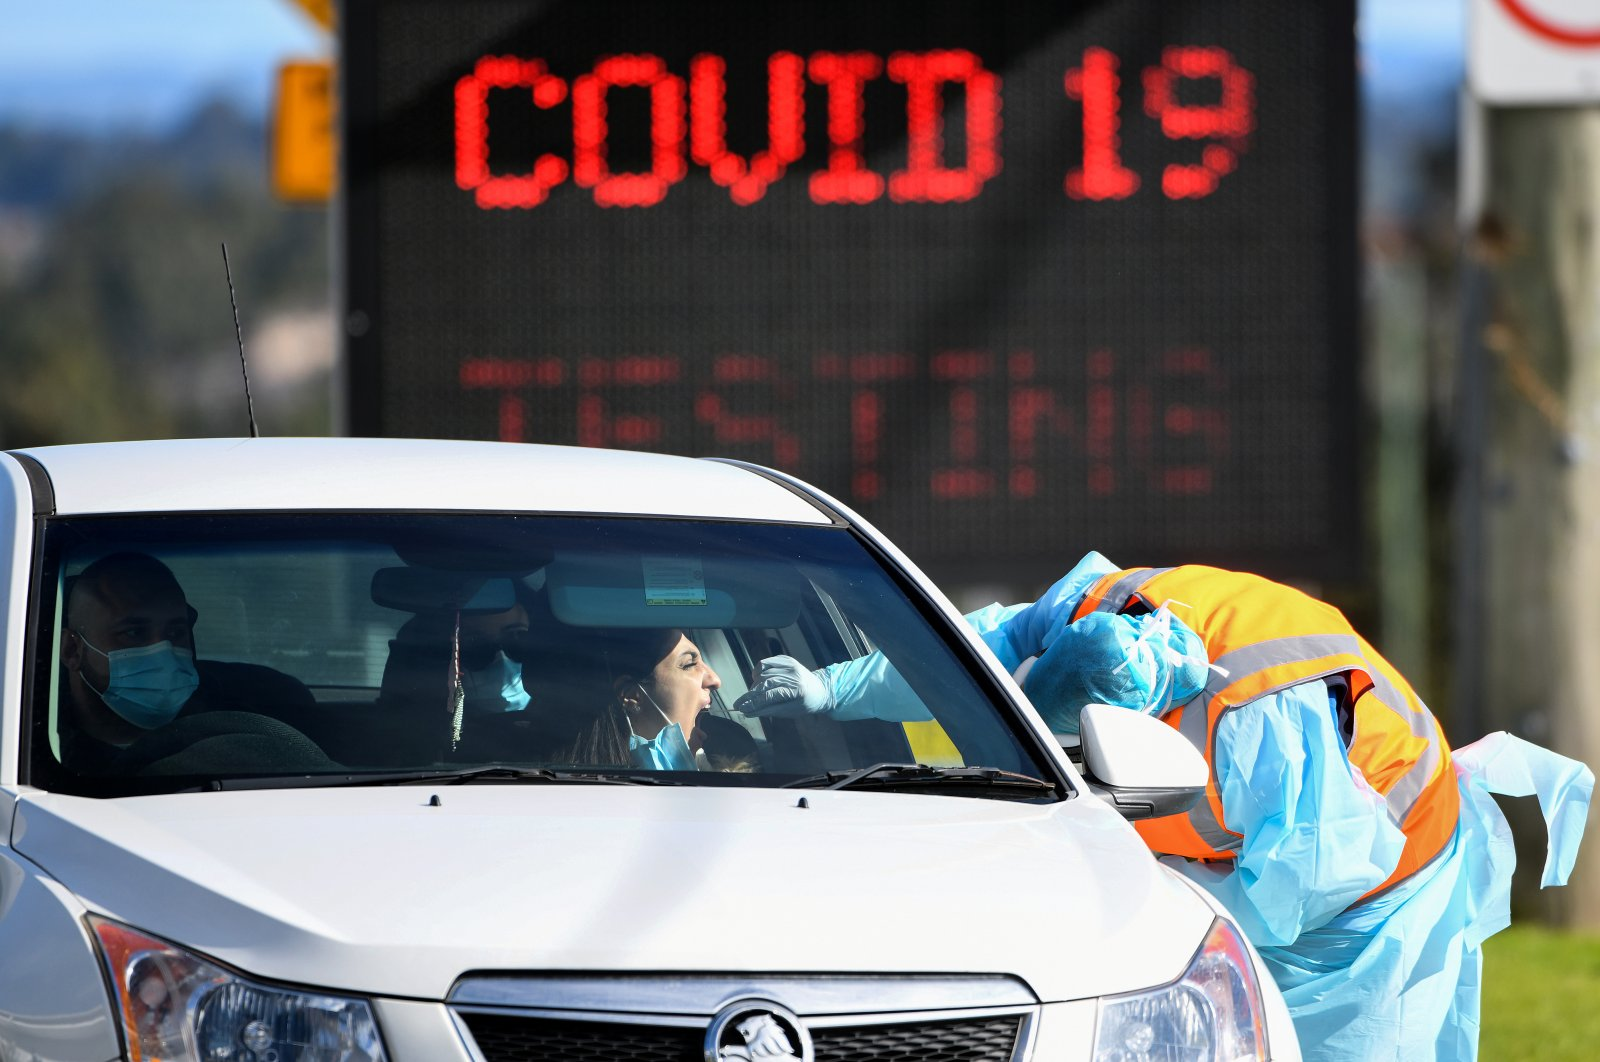 A member of the public is seen getting a test for the coronavirus disease (COVID-19) at the Crossroads Hotel testing centre following a cluster of infections in Sydney, Australia, July 16, 2020. (Reuters Photo)